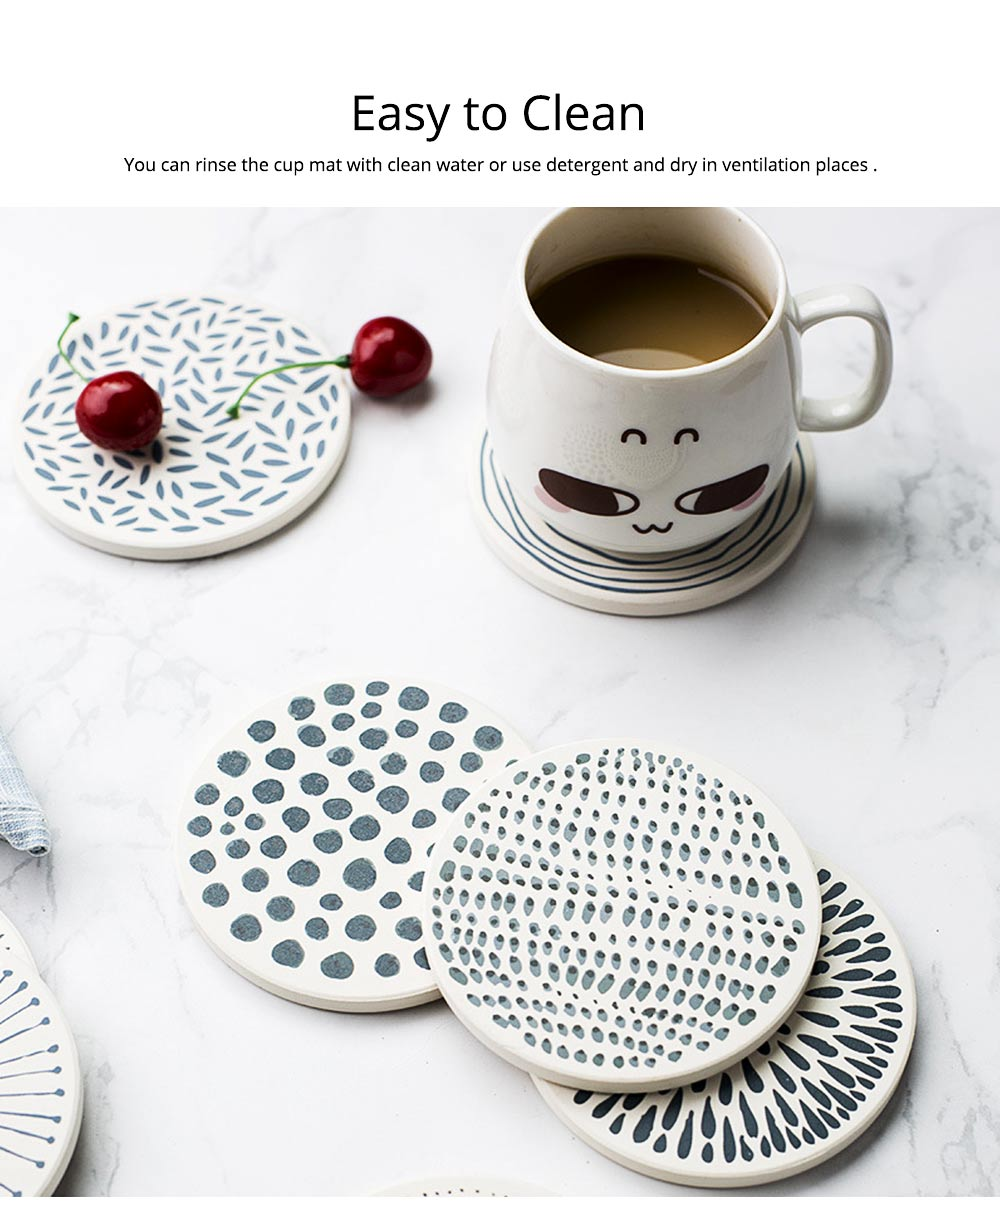 Coasters Diatomite Cup Holders Eco-Friendly Quick Dry Mat Fit for All Cups Home Office 3